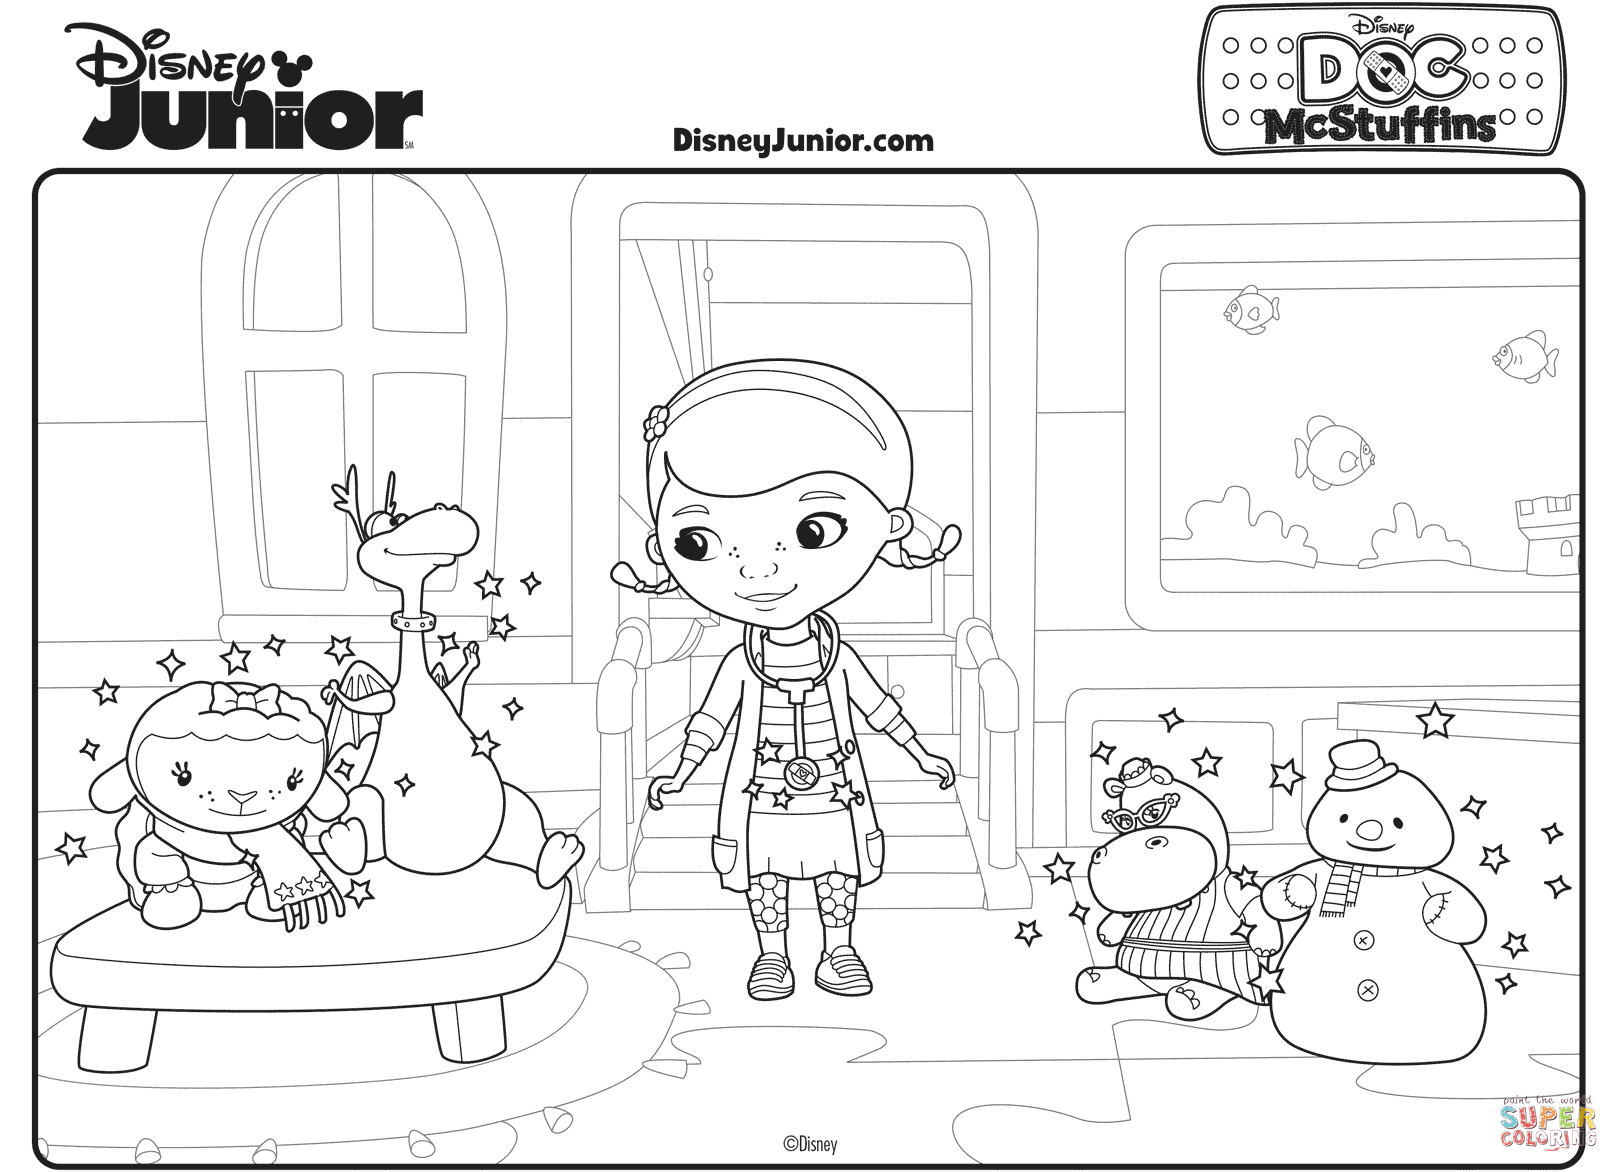 Doc Mcstuffins With Her Toy Friends Coloring Page Throughout